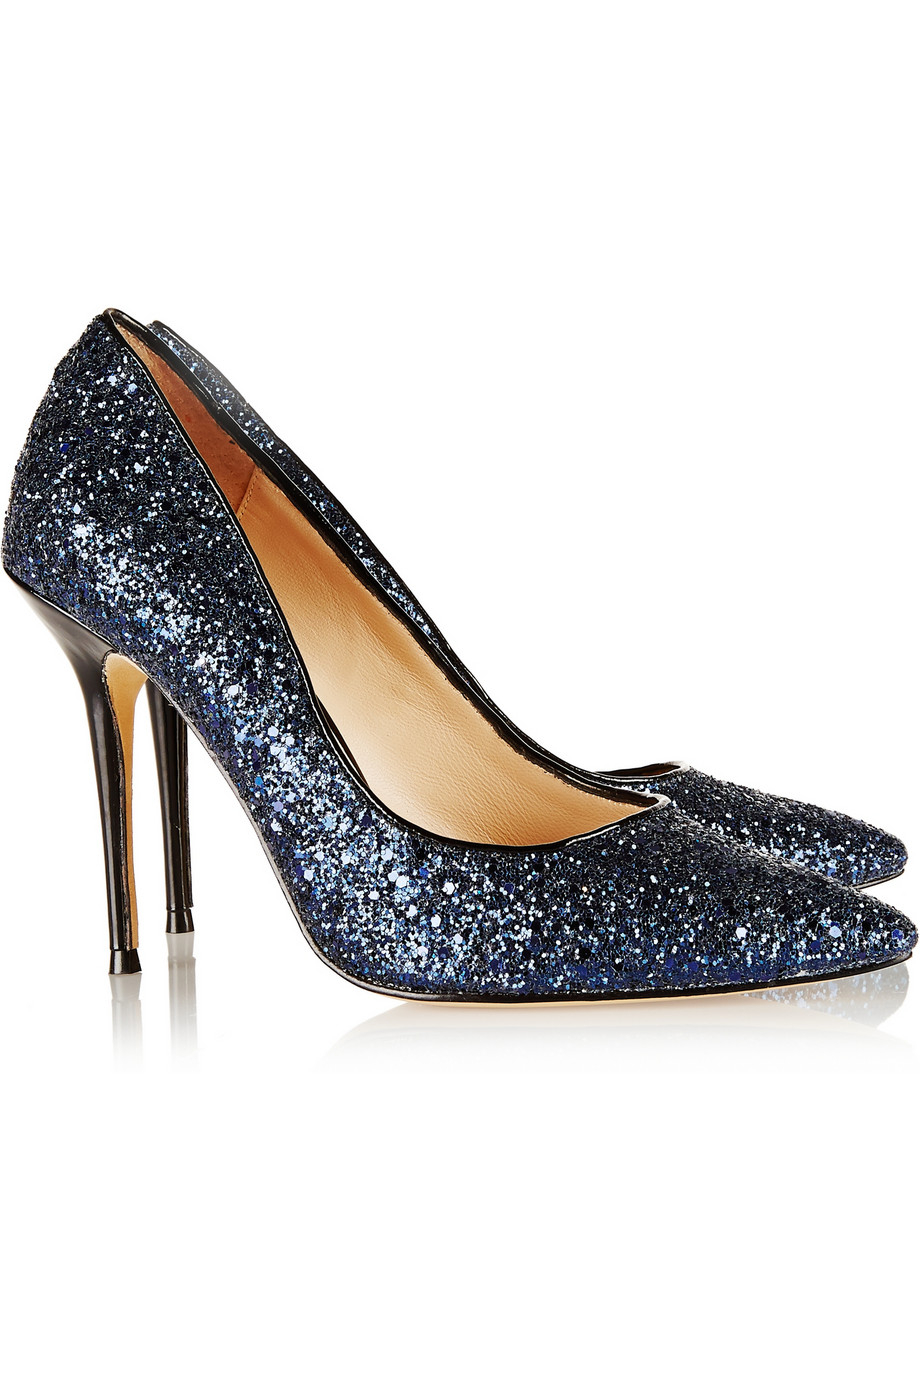 1609ac475a24 Lyst - Lucy Choi Adelite Glitter-Finished Leather Pumps in Blue